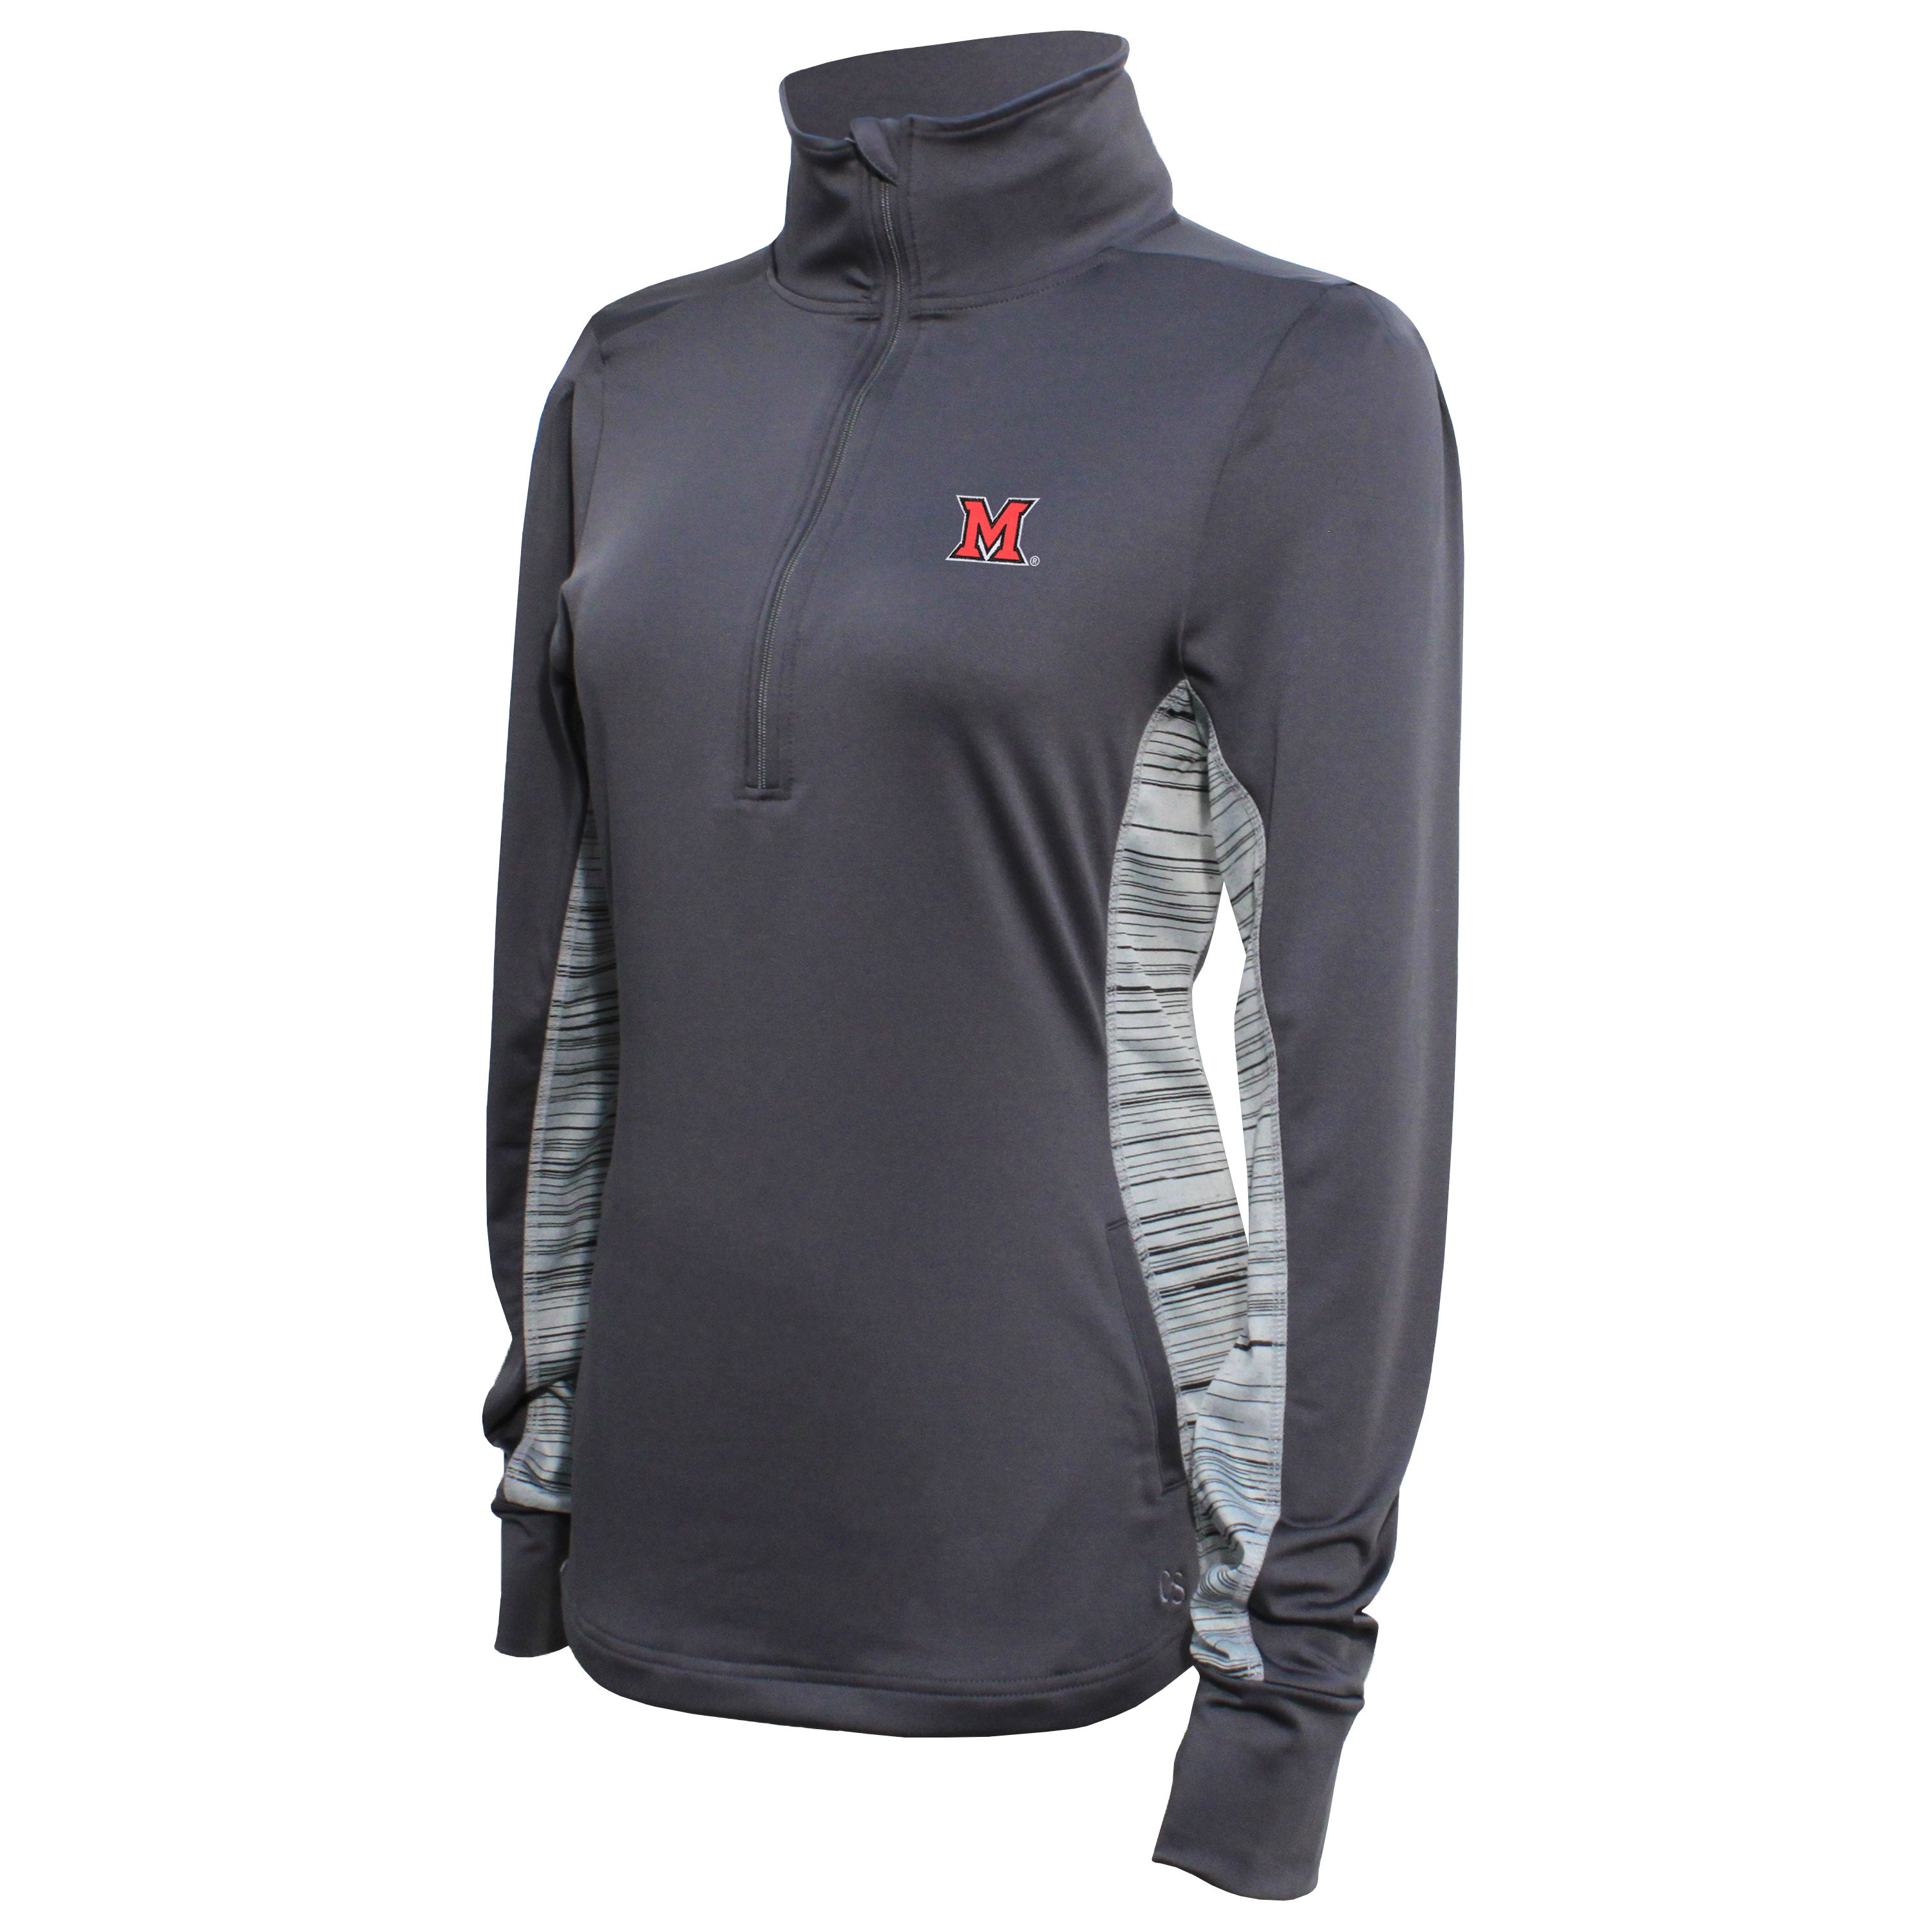 Crable Miami Women's Carbon Half Zip Tech Pullover